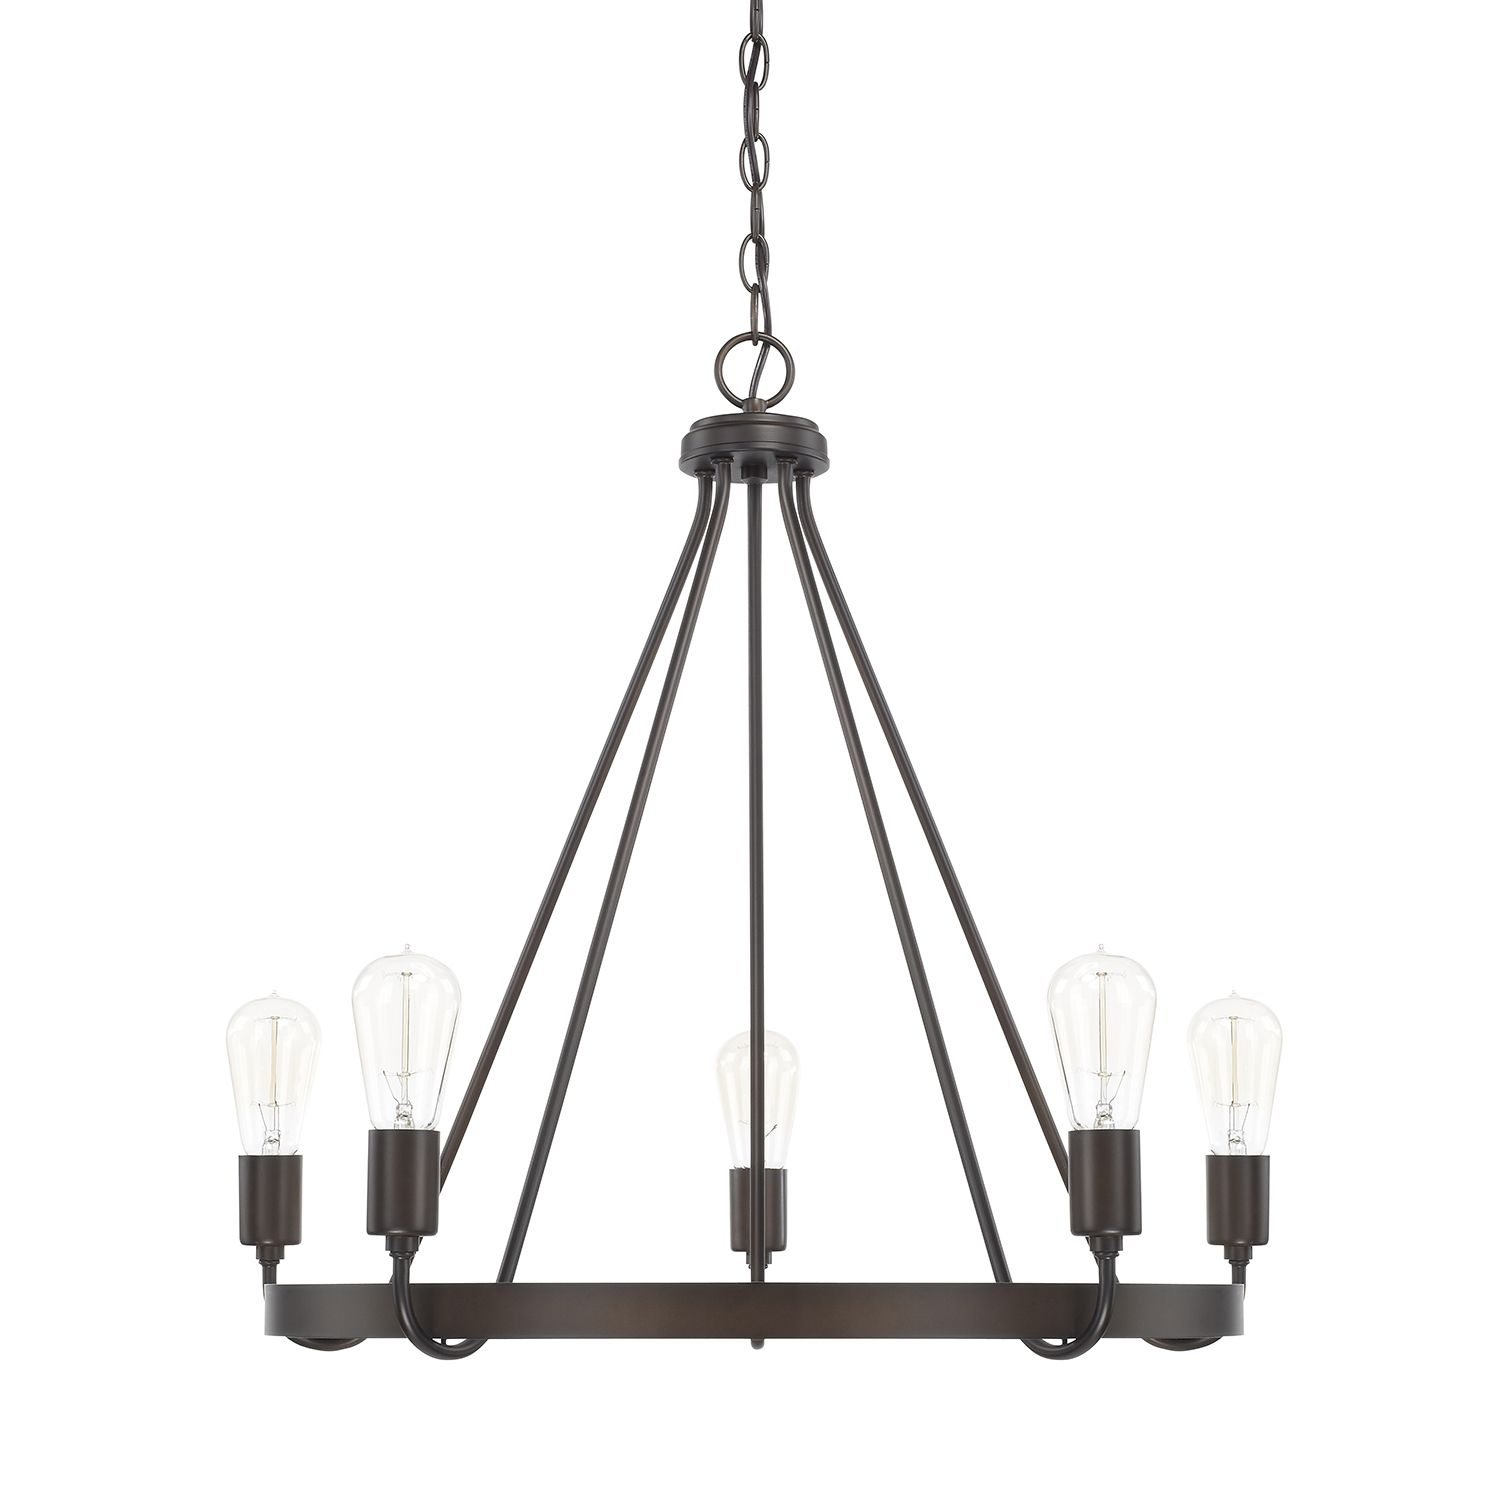 5 light chandelier capital lighting fixture company home decor 5 light chandelier capital lighting fixture company aloadofball Image collections